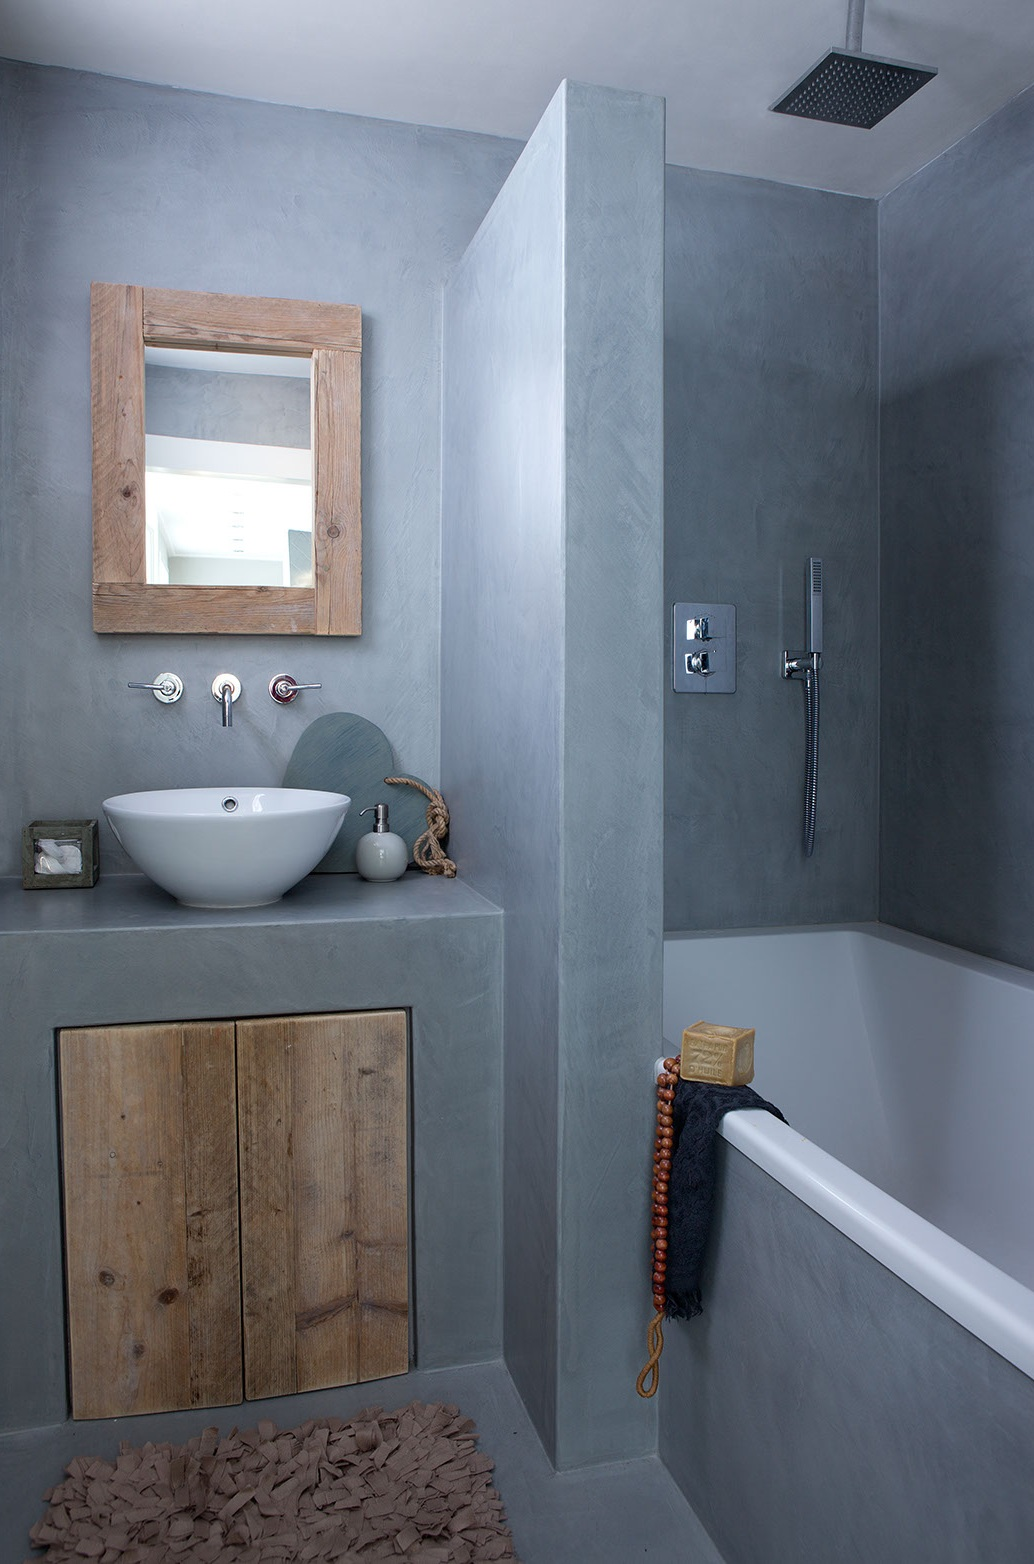 27 tadelakt bathroom design ideas decoholic for Salle de bain carrelage gris et beige